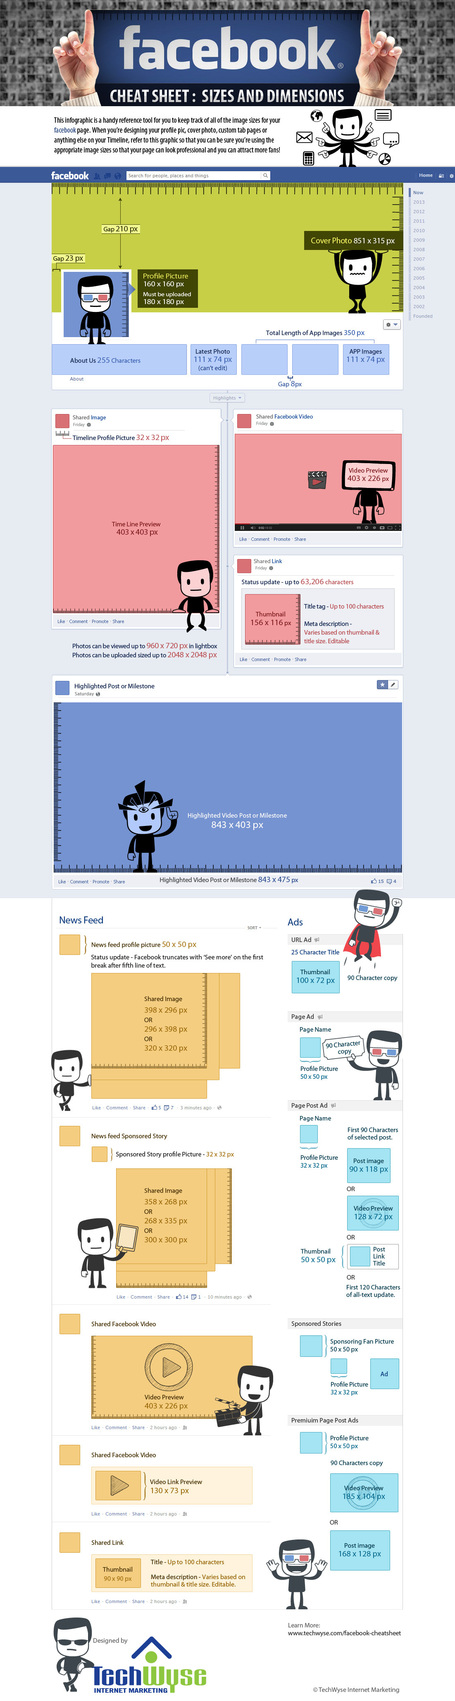 Facebook Cheat Sheet: Image Size and Dimensions | Et si c'était vrai.... | Scoop.it